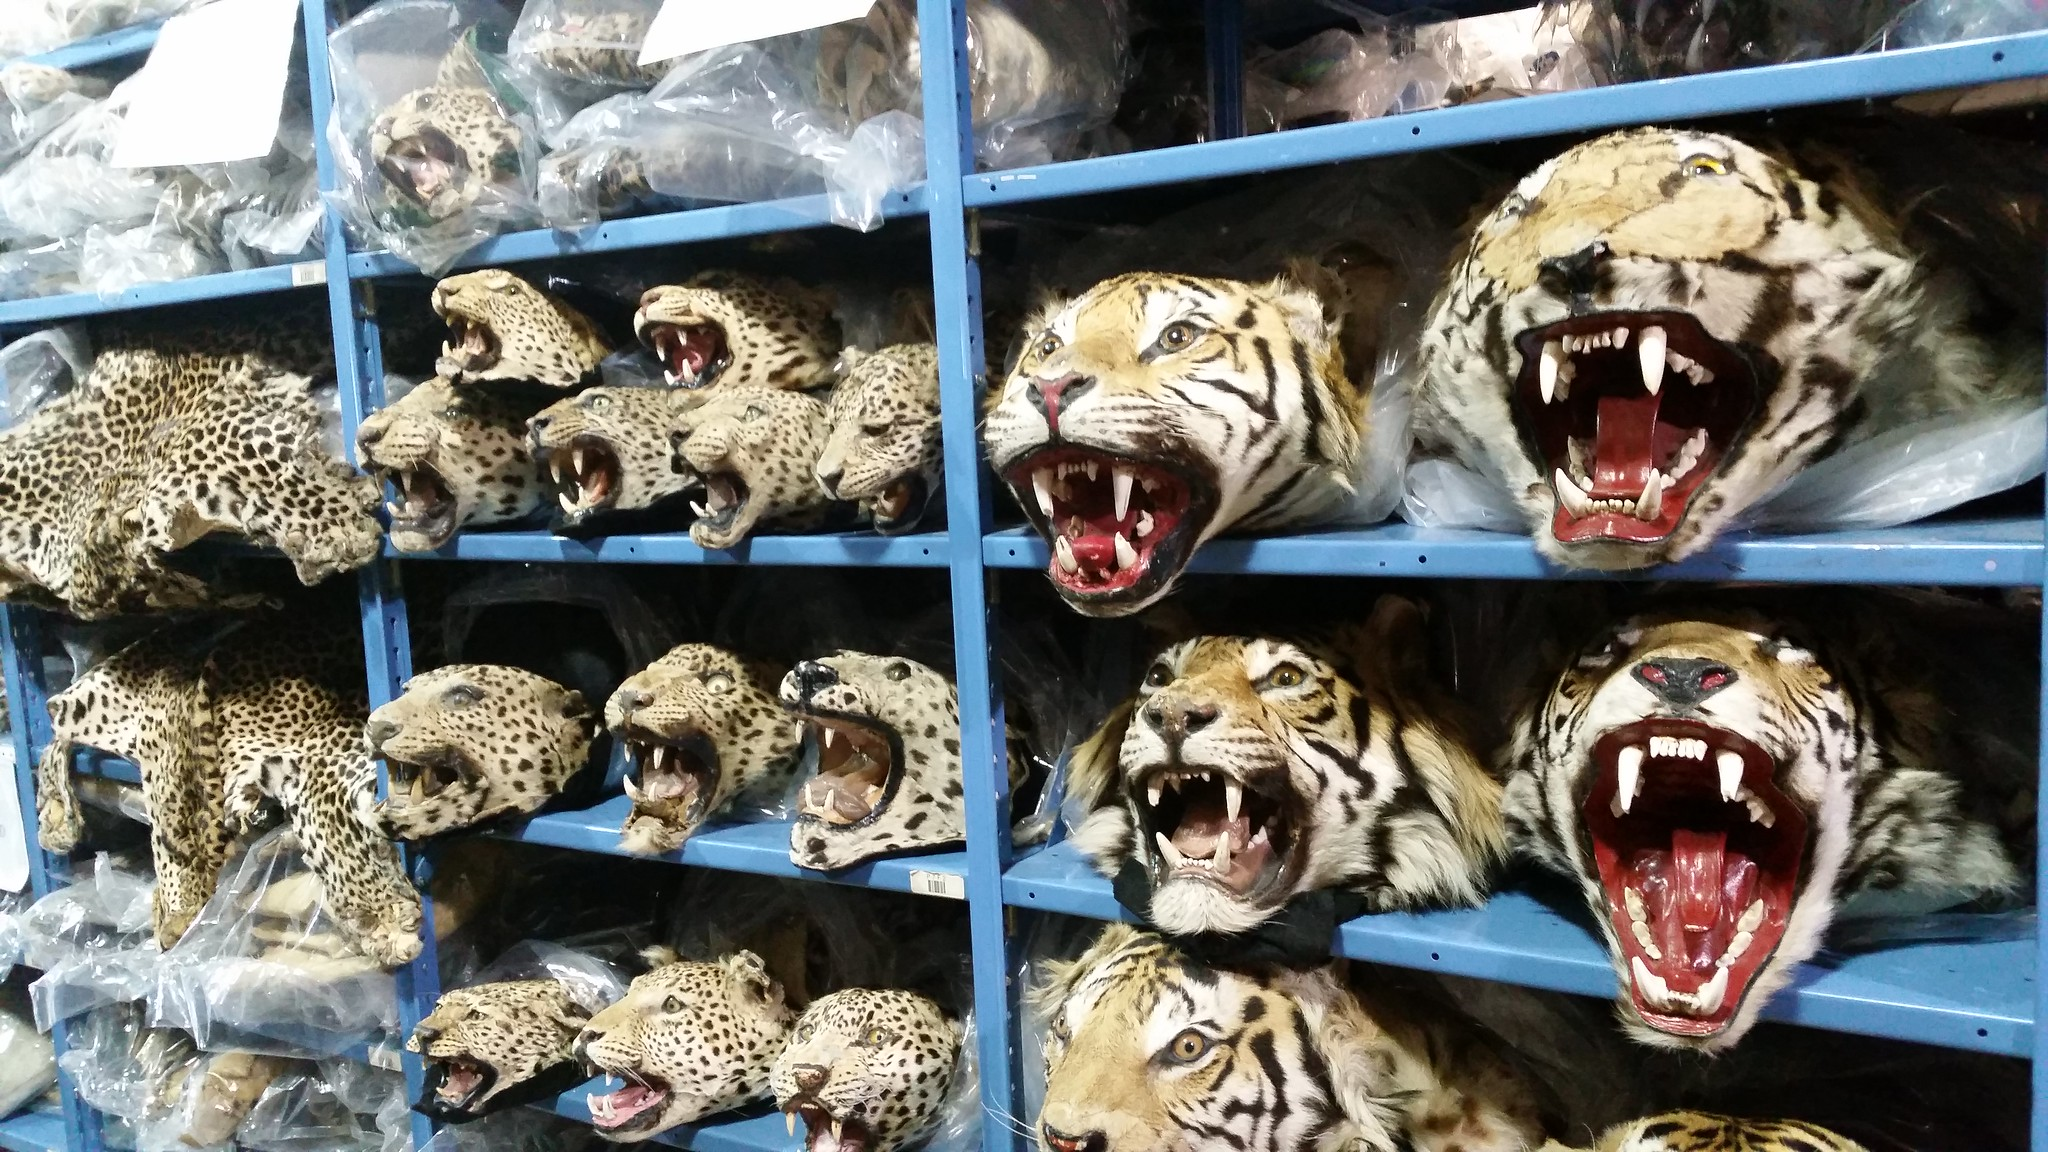 Global Coalition to End Wildlife Trafficking Online takes down or blocks three million wildlife trafficking listings